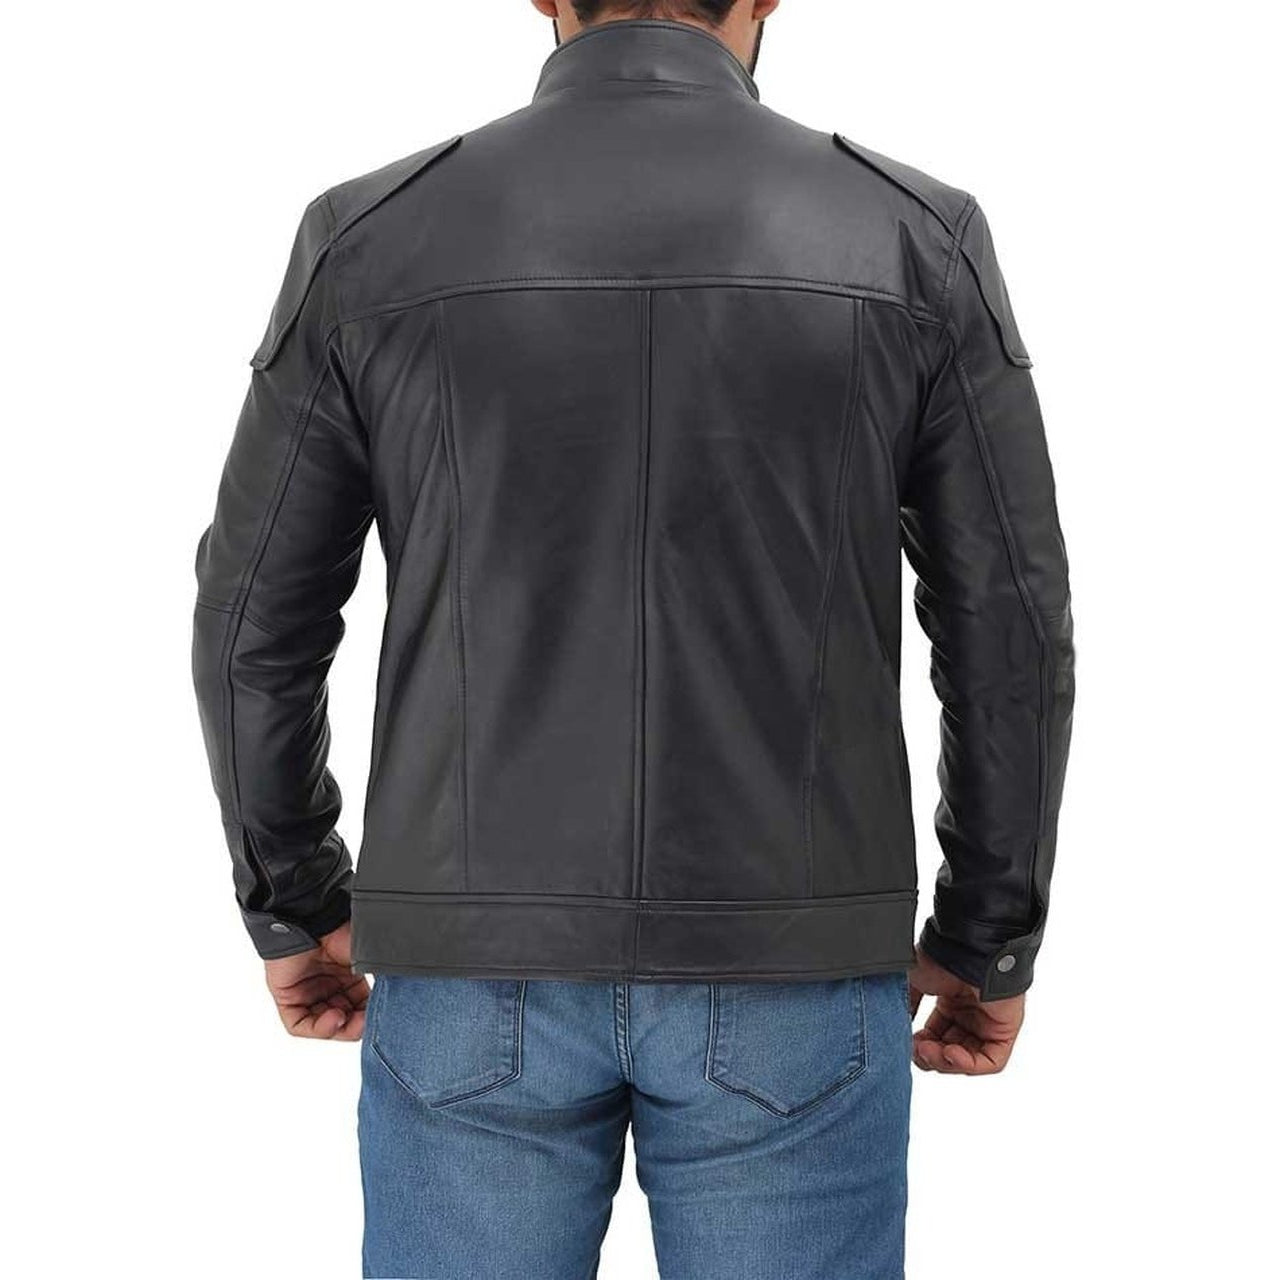 Black Lambskin Leather Motorcycle Jacket Men - Leather Jacket